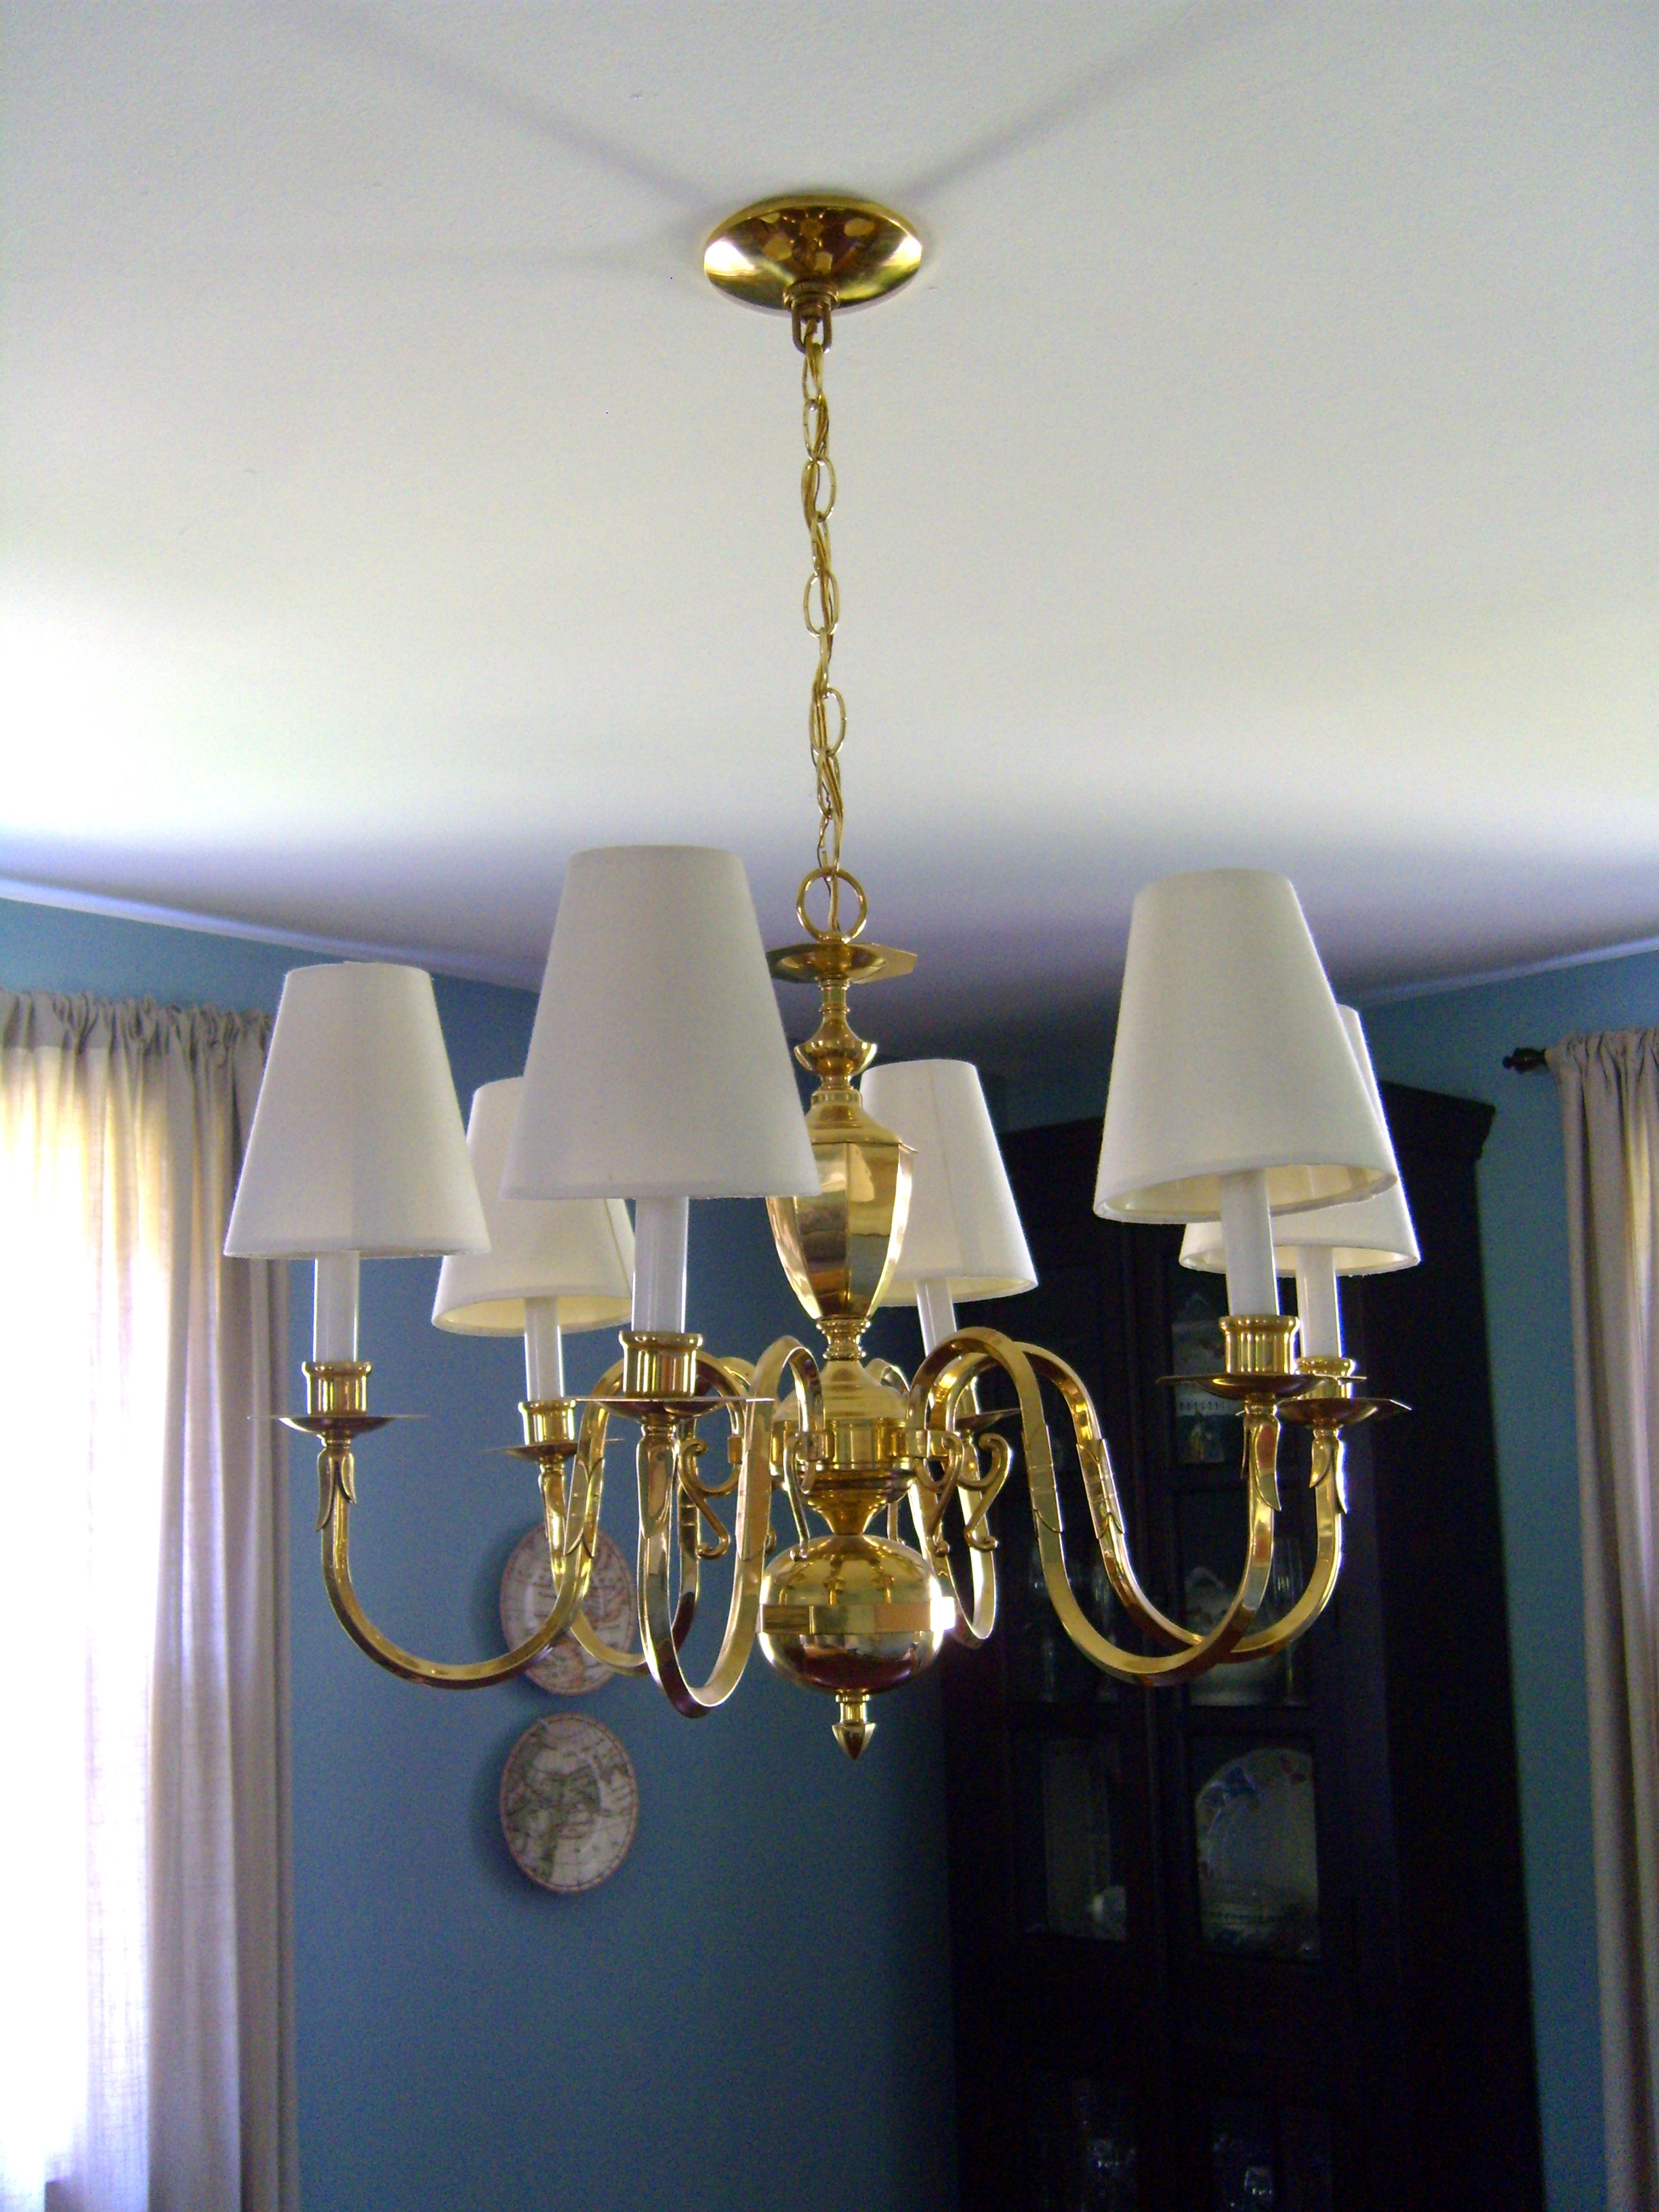 Chandeliers With Lamp Shades Within Most Current Chandelier Lamp Shades Drum Shape Tab Blackover Drumless Less Shade (View 9 of 20)